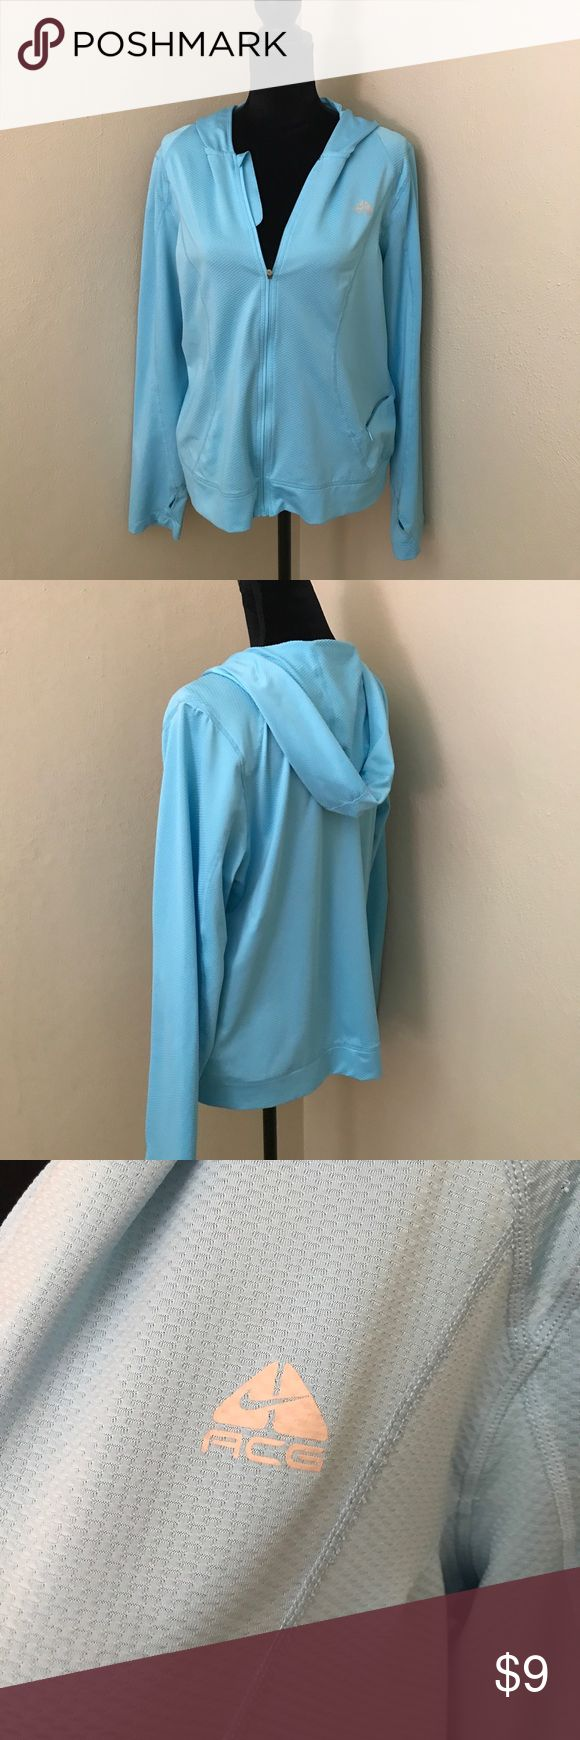 """Baby Blue Hoodie Gently used hoodie great for walks on brisk mornings, breathable weave, poly/spandex blend, machine wash cold. Zipper pocket for ID and keys, thumb holes at end of each sleeve. Small stain on right elbow (see picture). Measures 24"""" shoulder to hem and 22"""" across chest. Zippers work fine. Bundle and save! Smoke free home. Nike ACG Jackets & Coats"""